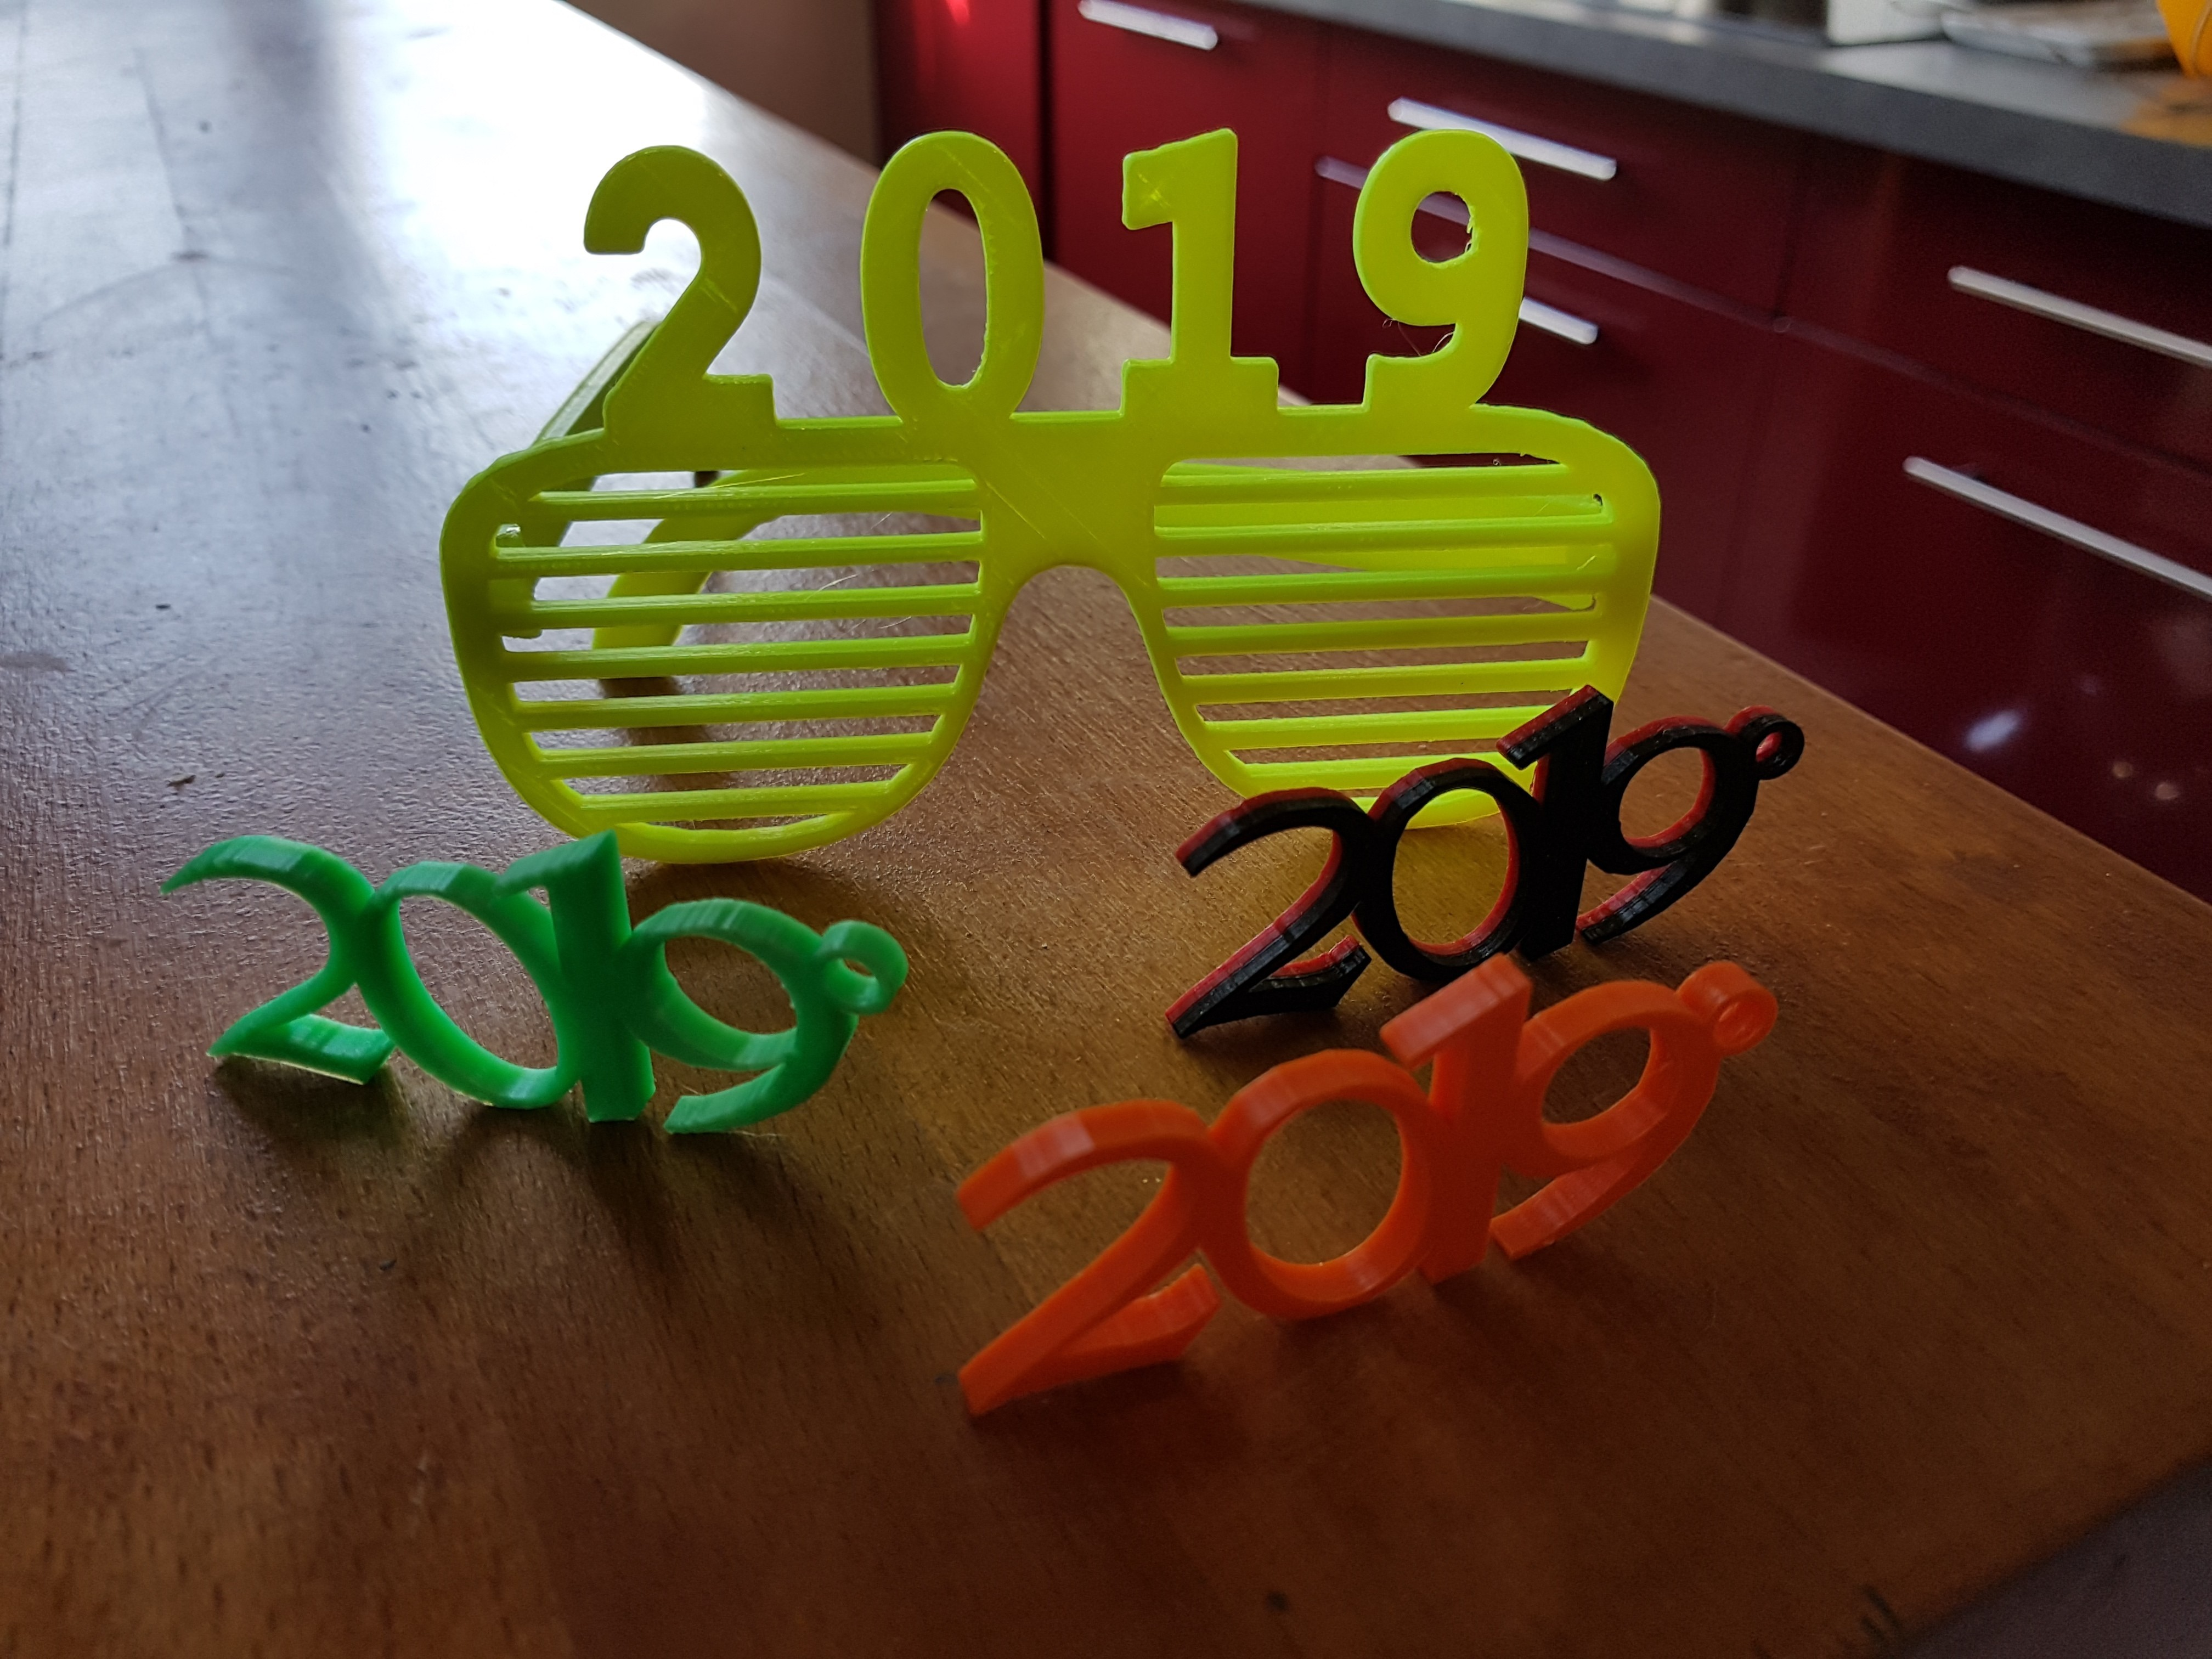 20181211_142531.jpg Download free STL file glasses and key ring 2019 • Template to 3D print, catf3d